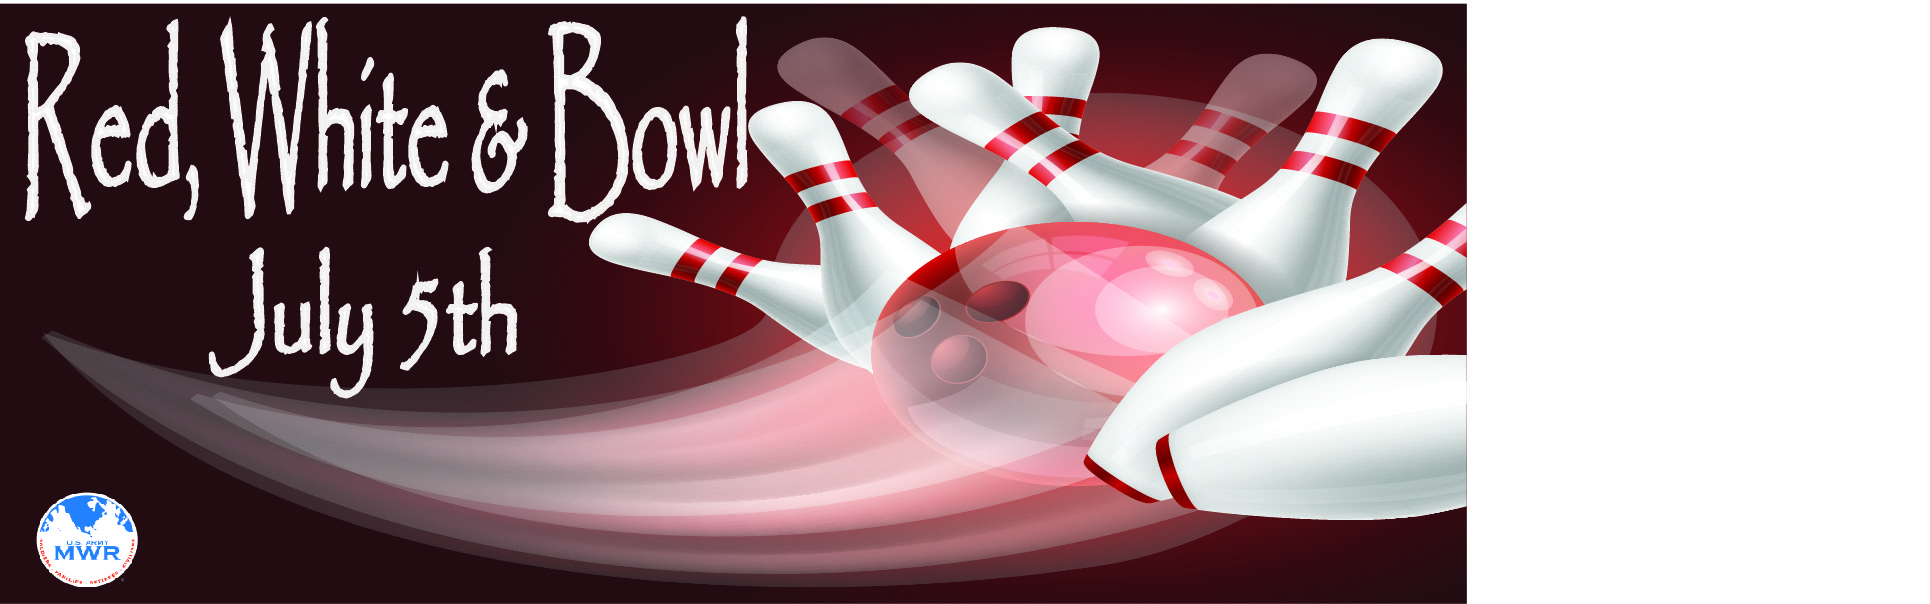 Pine Plains Bowling Center Fort Drum Ny